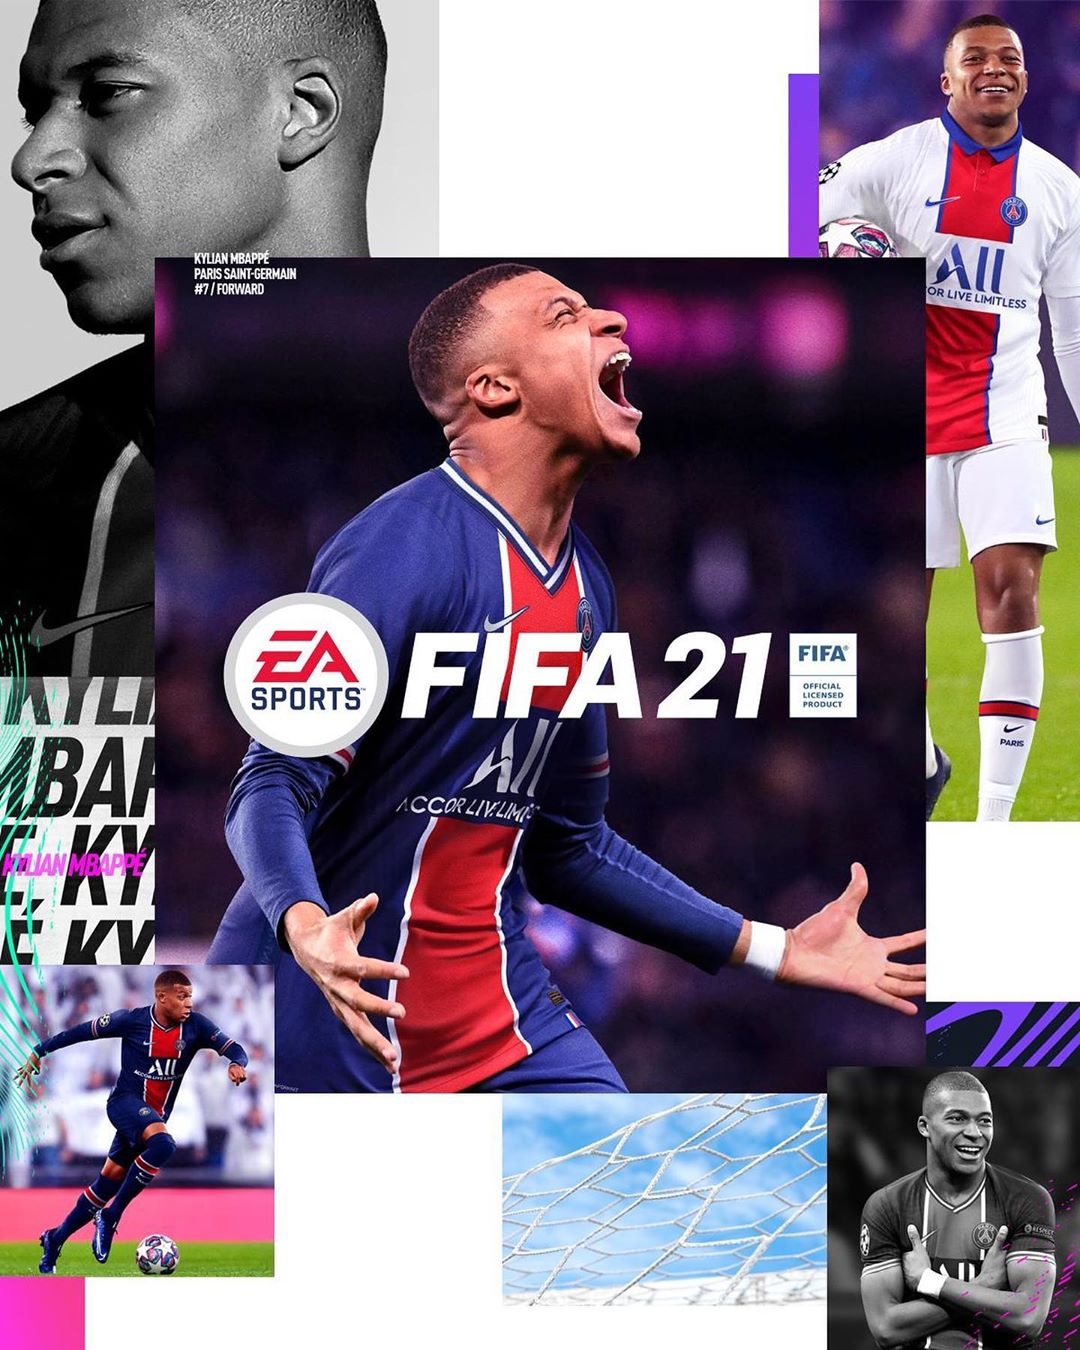 mbappe fifa 21 standard edition